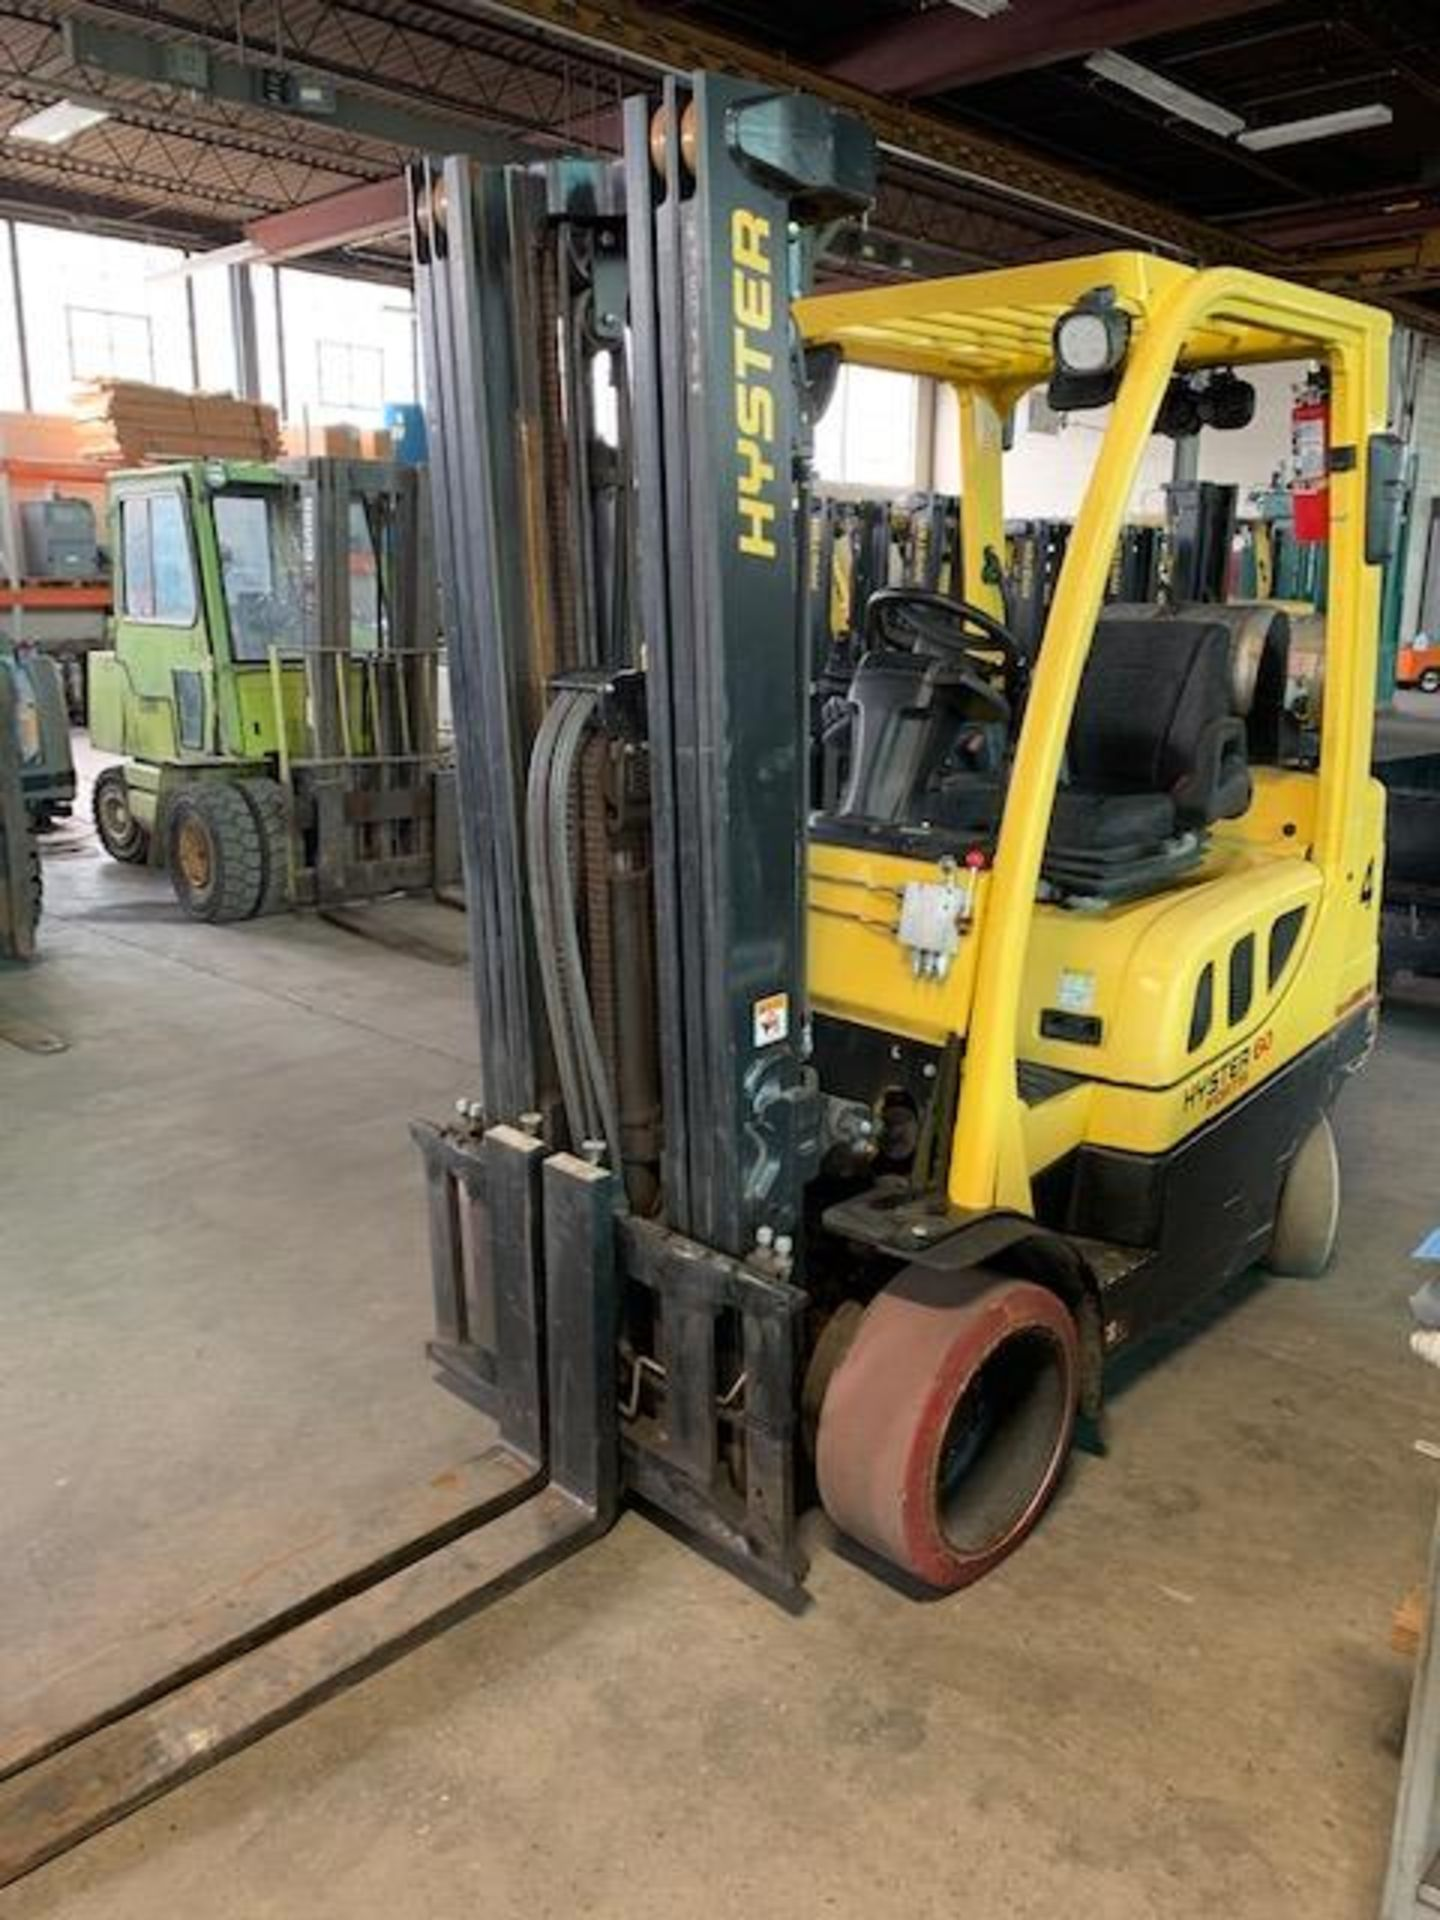 5,000 LB. HYSTER MODEL S50FT LP GAS CUSHION TIRE LIFT TRUCK; S/N F187V25798M - Image 5 of 11